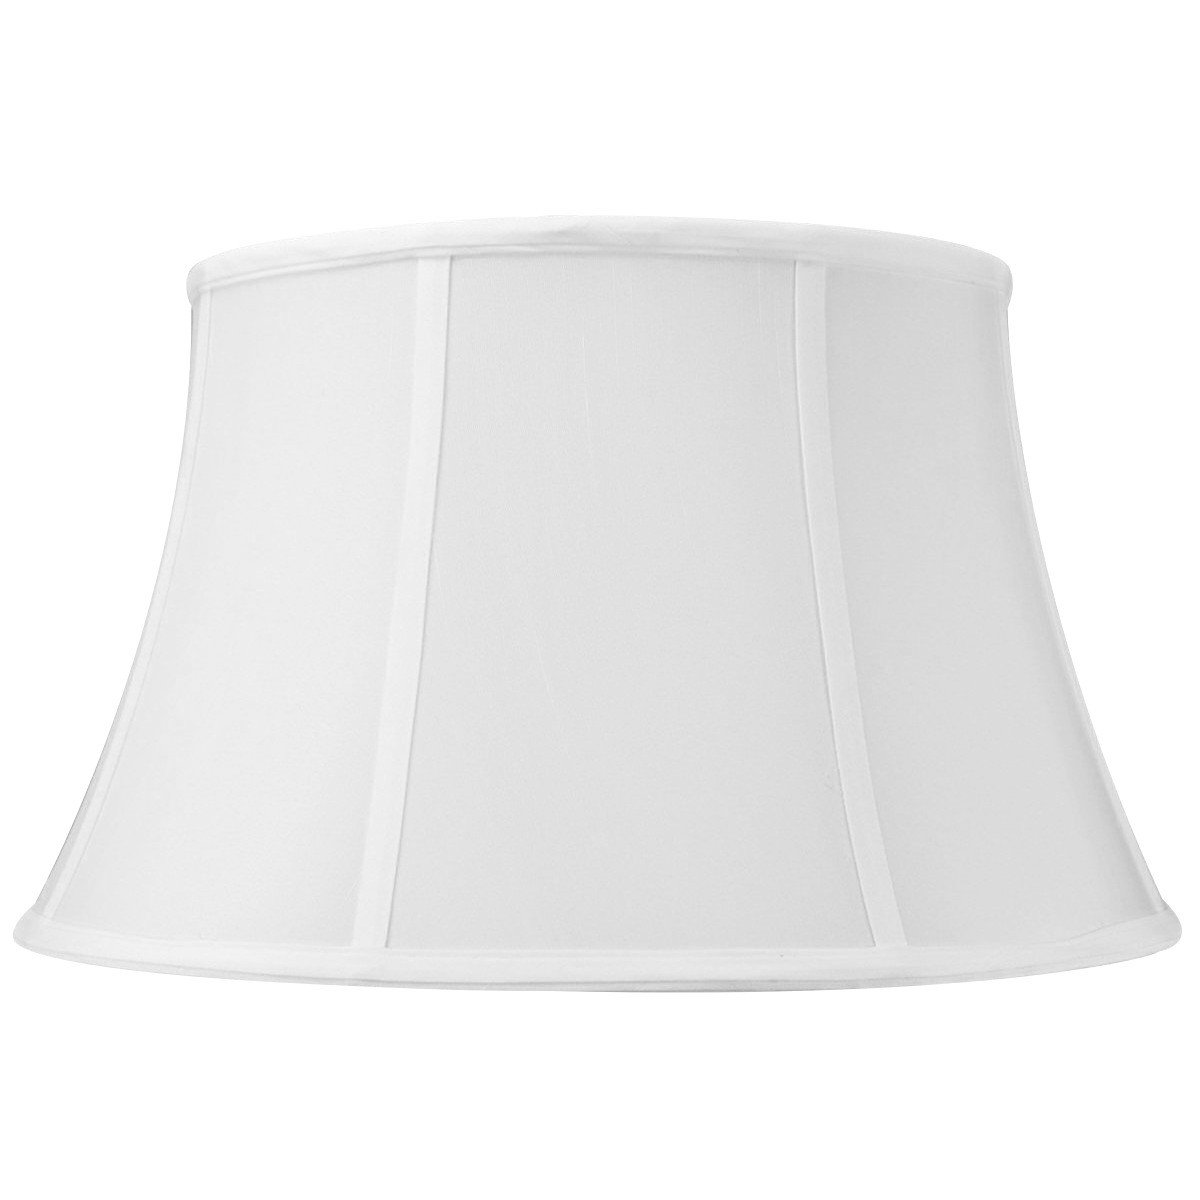 12x17x10 White Floor Shantung Lampshade with Brass Spider fitter By Home Concept - Perfect for table and Desk lamps - Medium, White